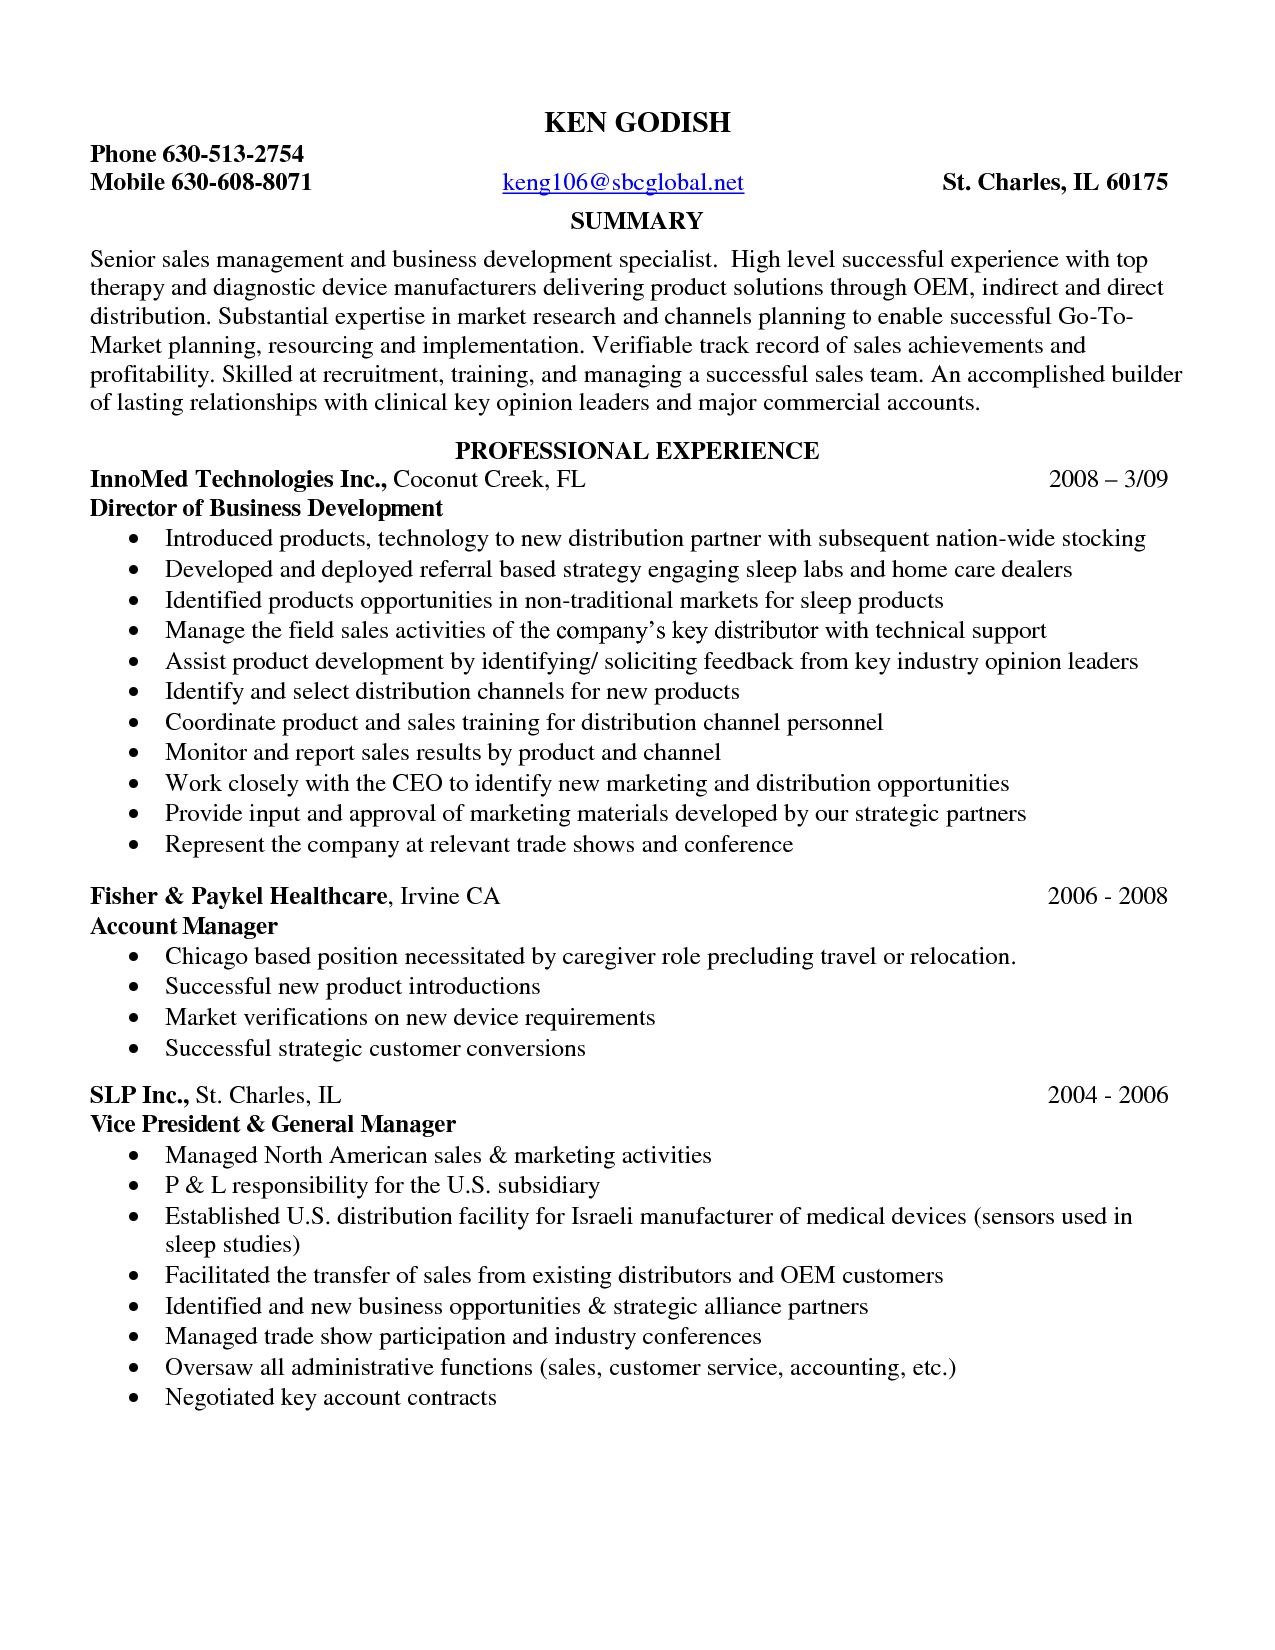 sample resume entry level pharmaceutical sales sample resume entry level pharmaceutical sales entry level pharmaceutical cover letter